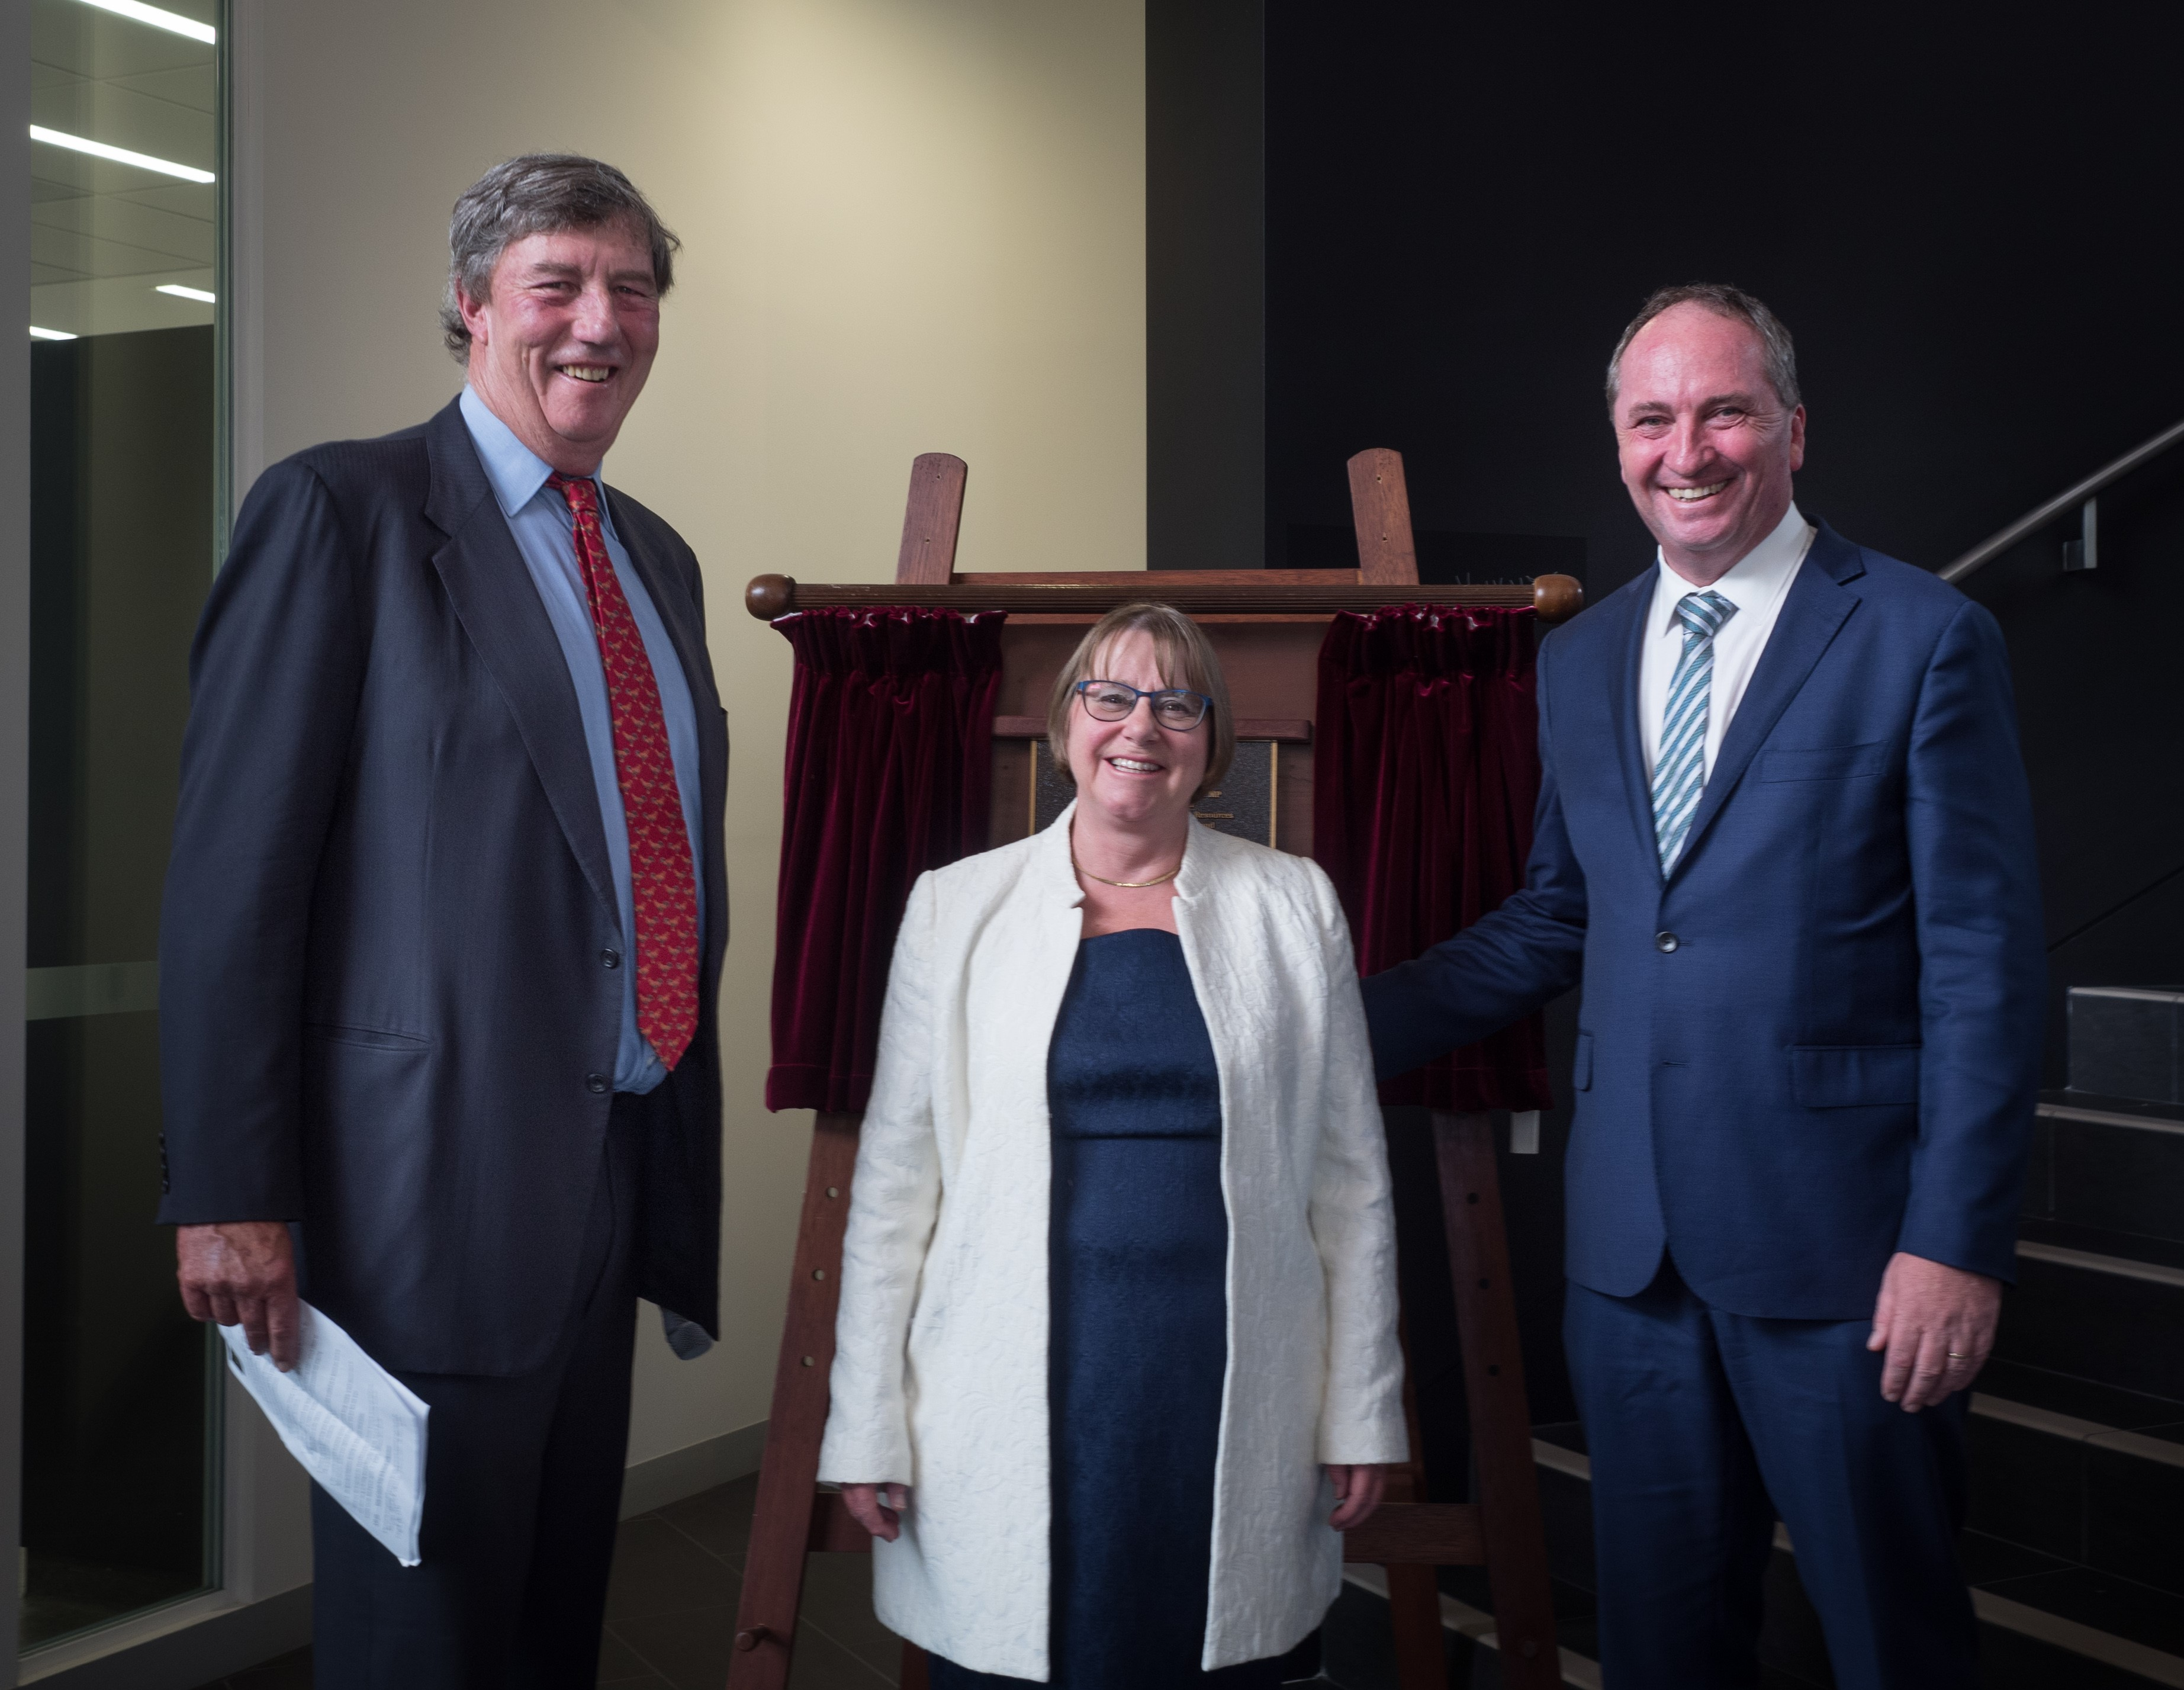 James Harris, Annabelle Duncan and Barnaby Joyce